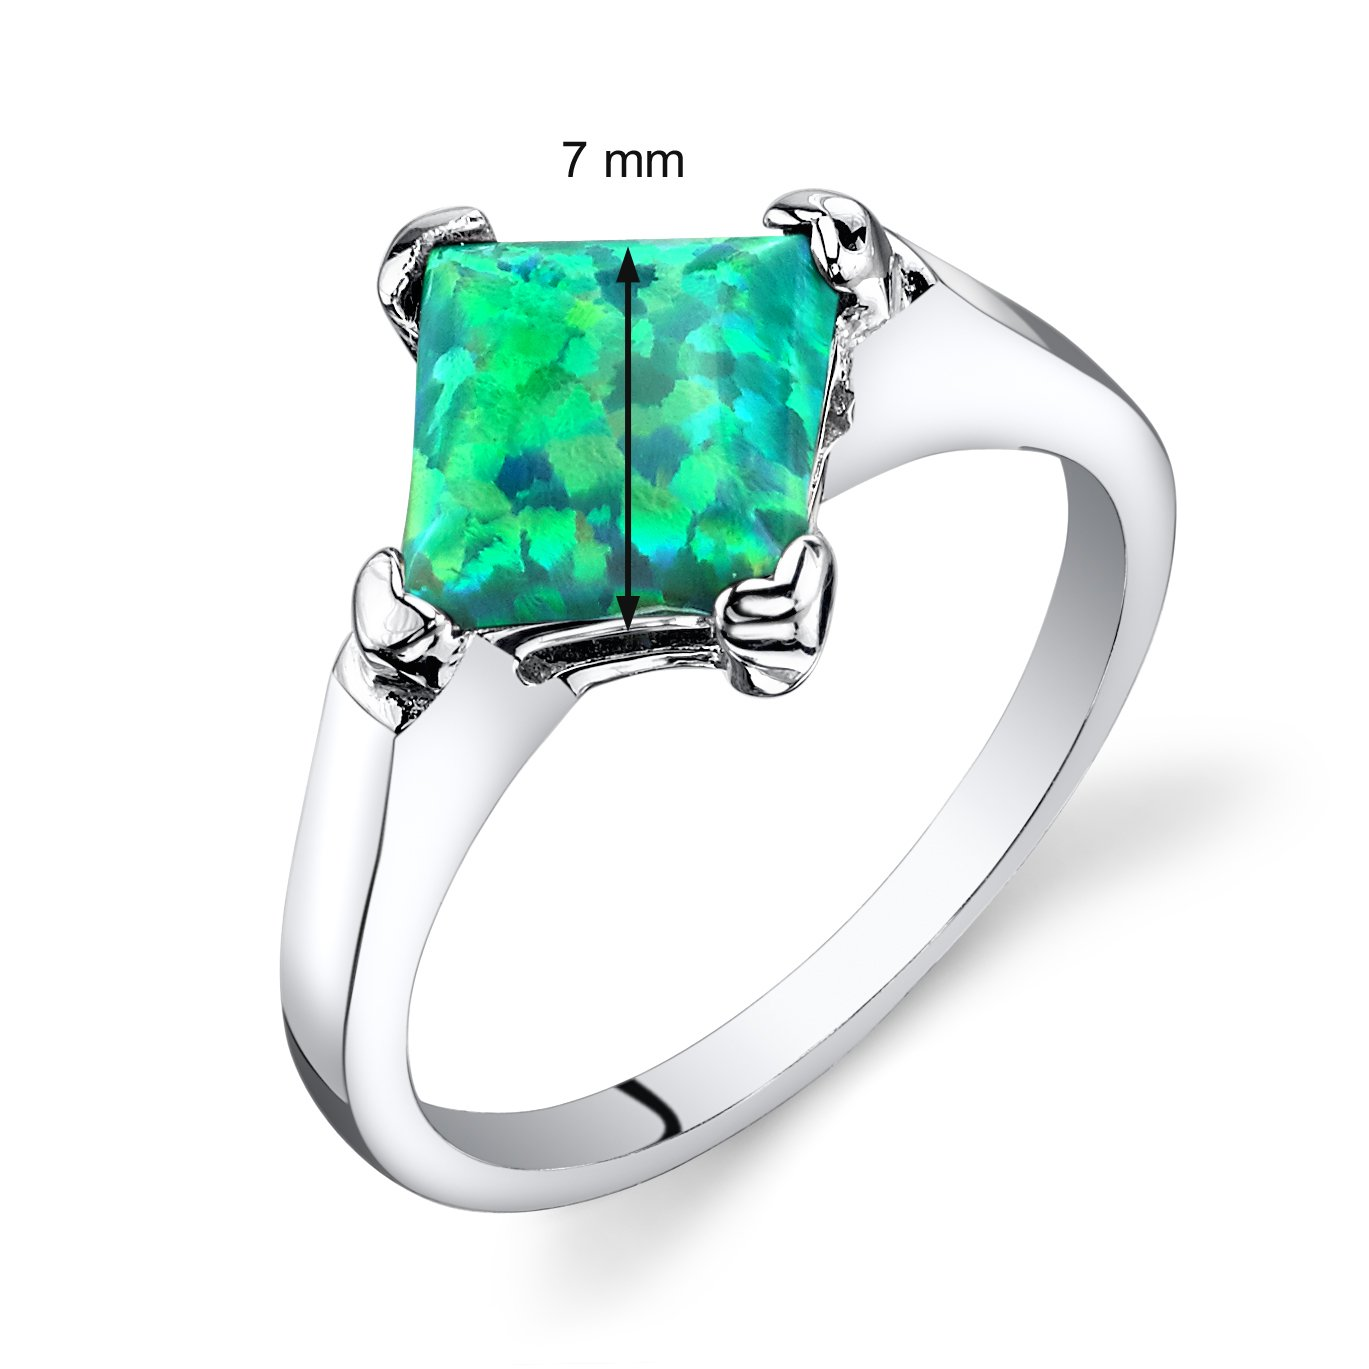 Created Green Opal Princess Cut Solitaire Ring Sterling Silver 1.00 Carat Sizes 5 to 9